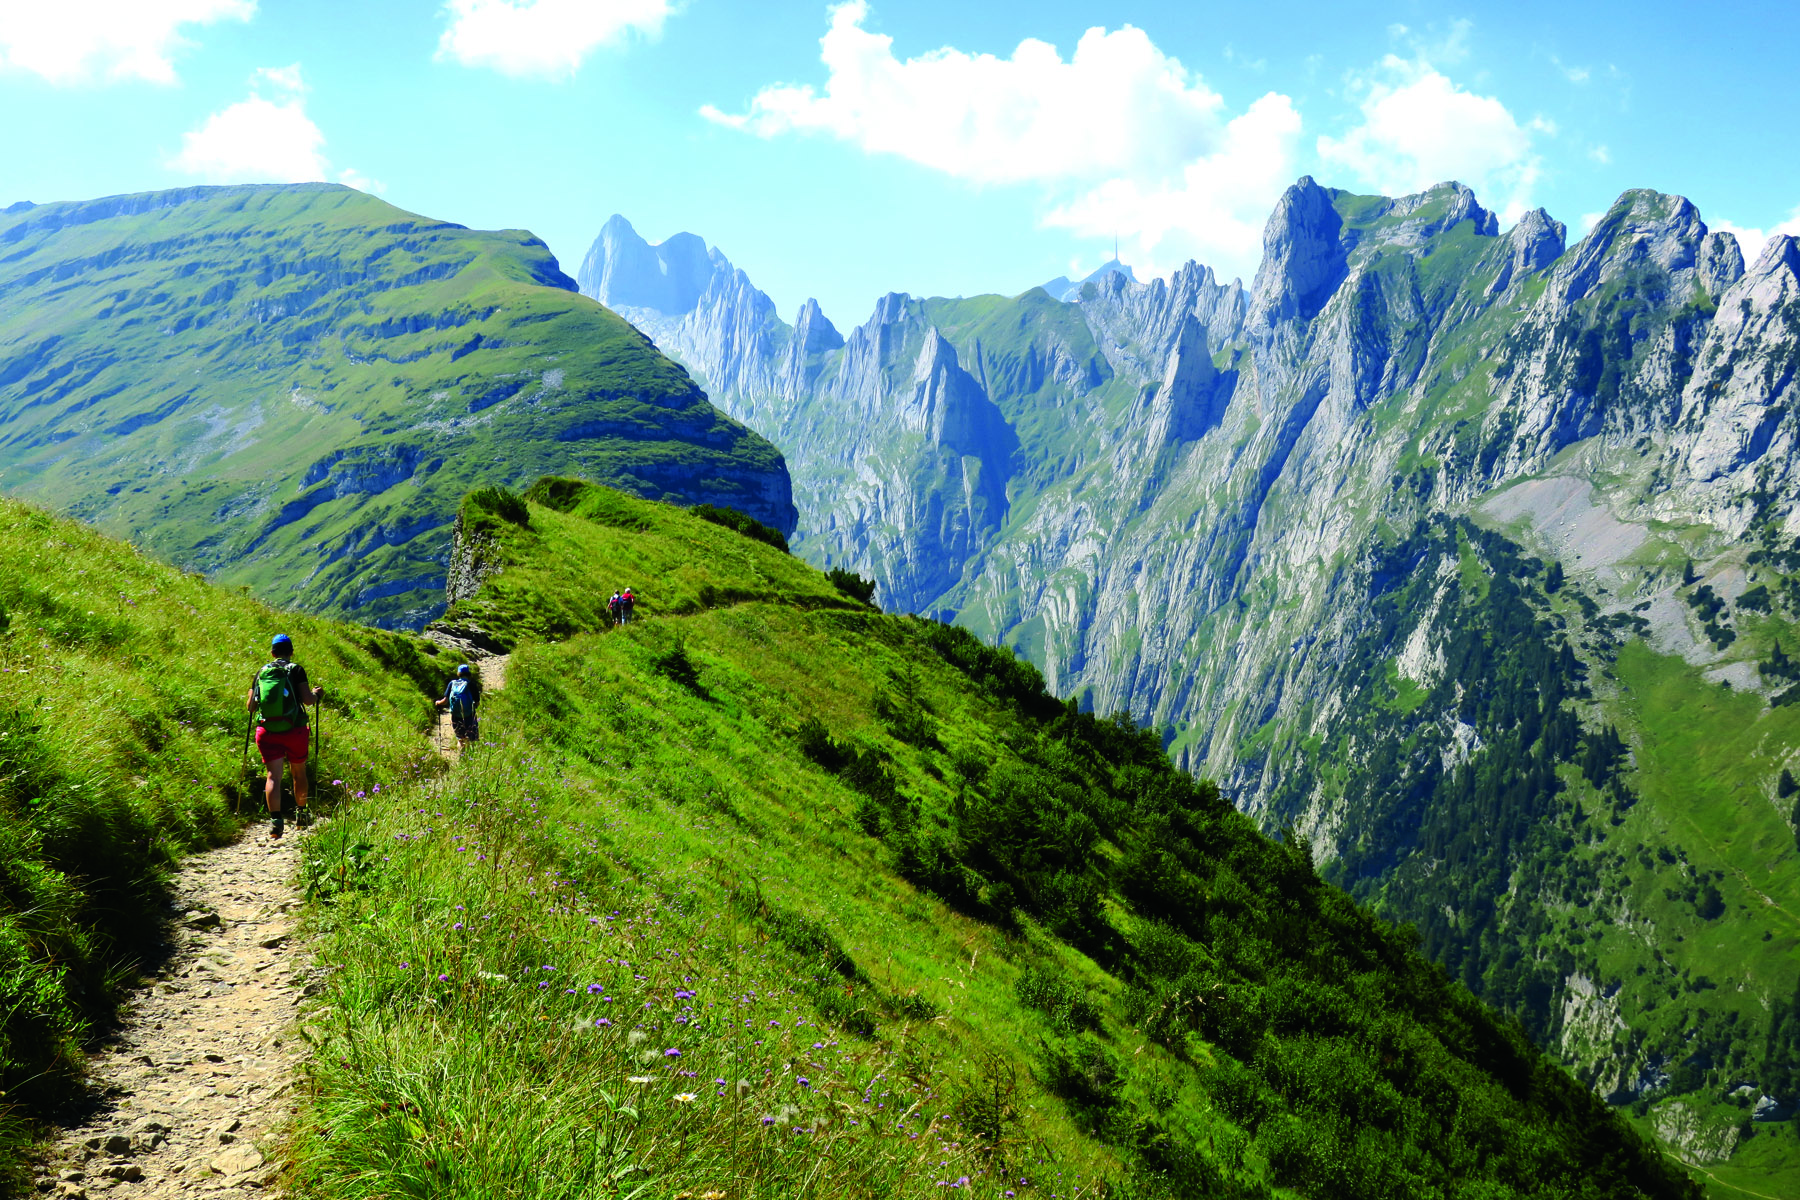 Locals are right when they say 'it's up and down, up and down' from Hoher Kasten to Staubern